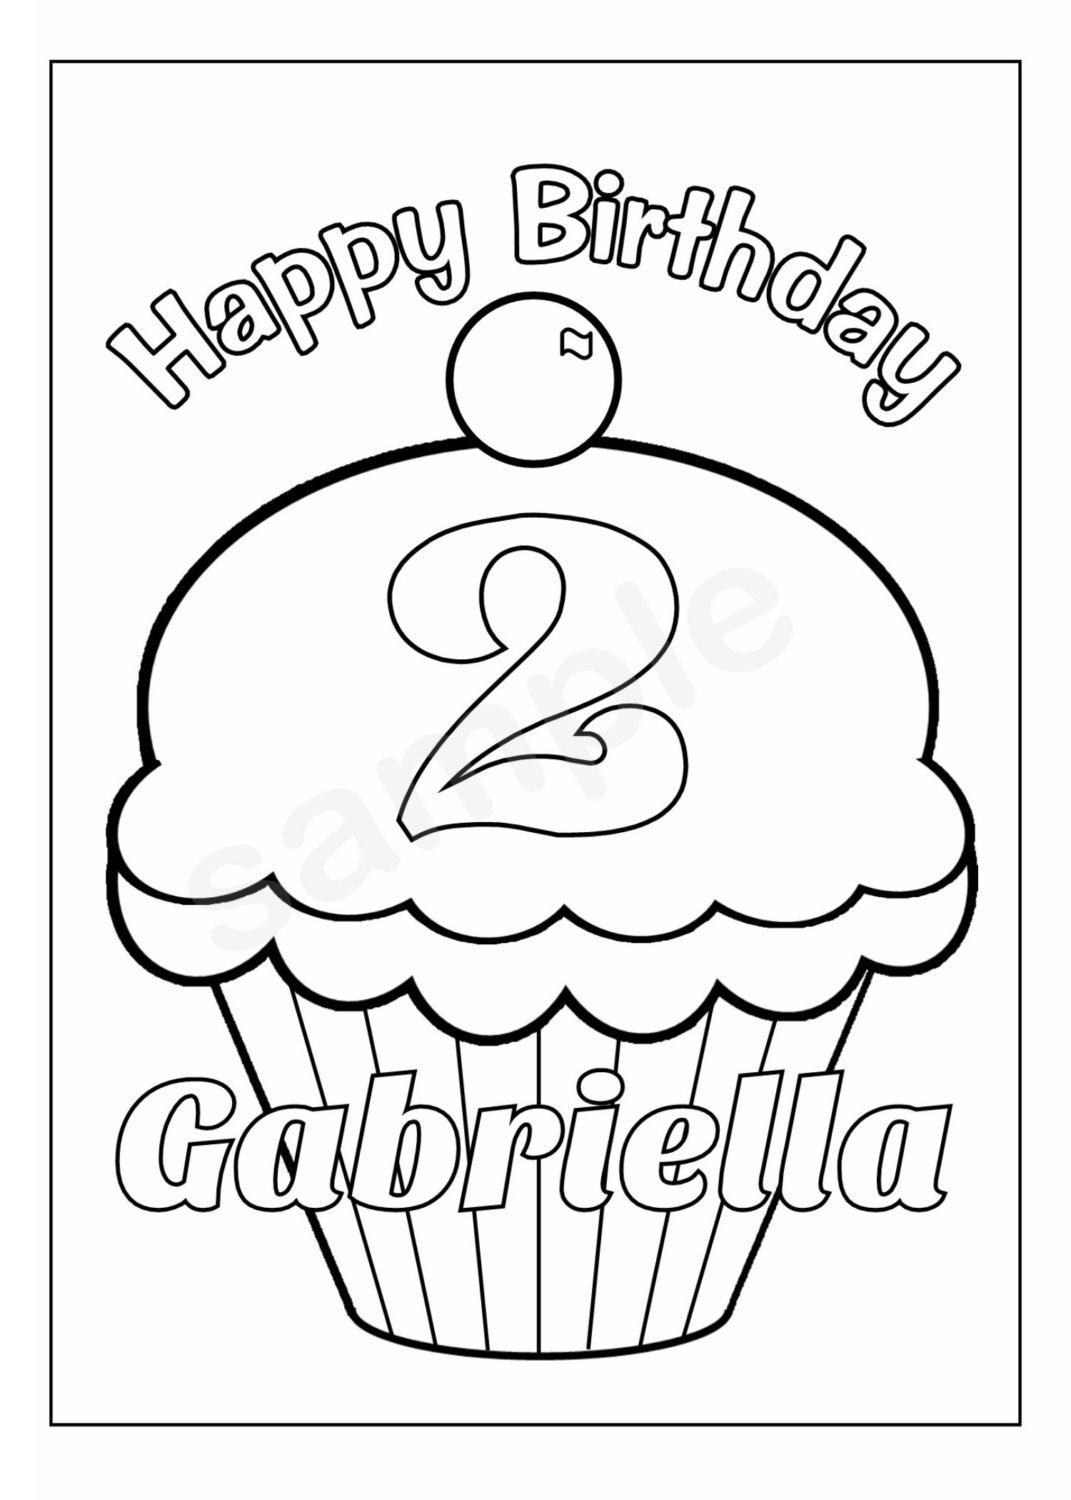 Birthday Coloring Pages Pdf : Personalized printable birthday cupcake cup cake by